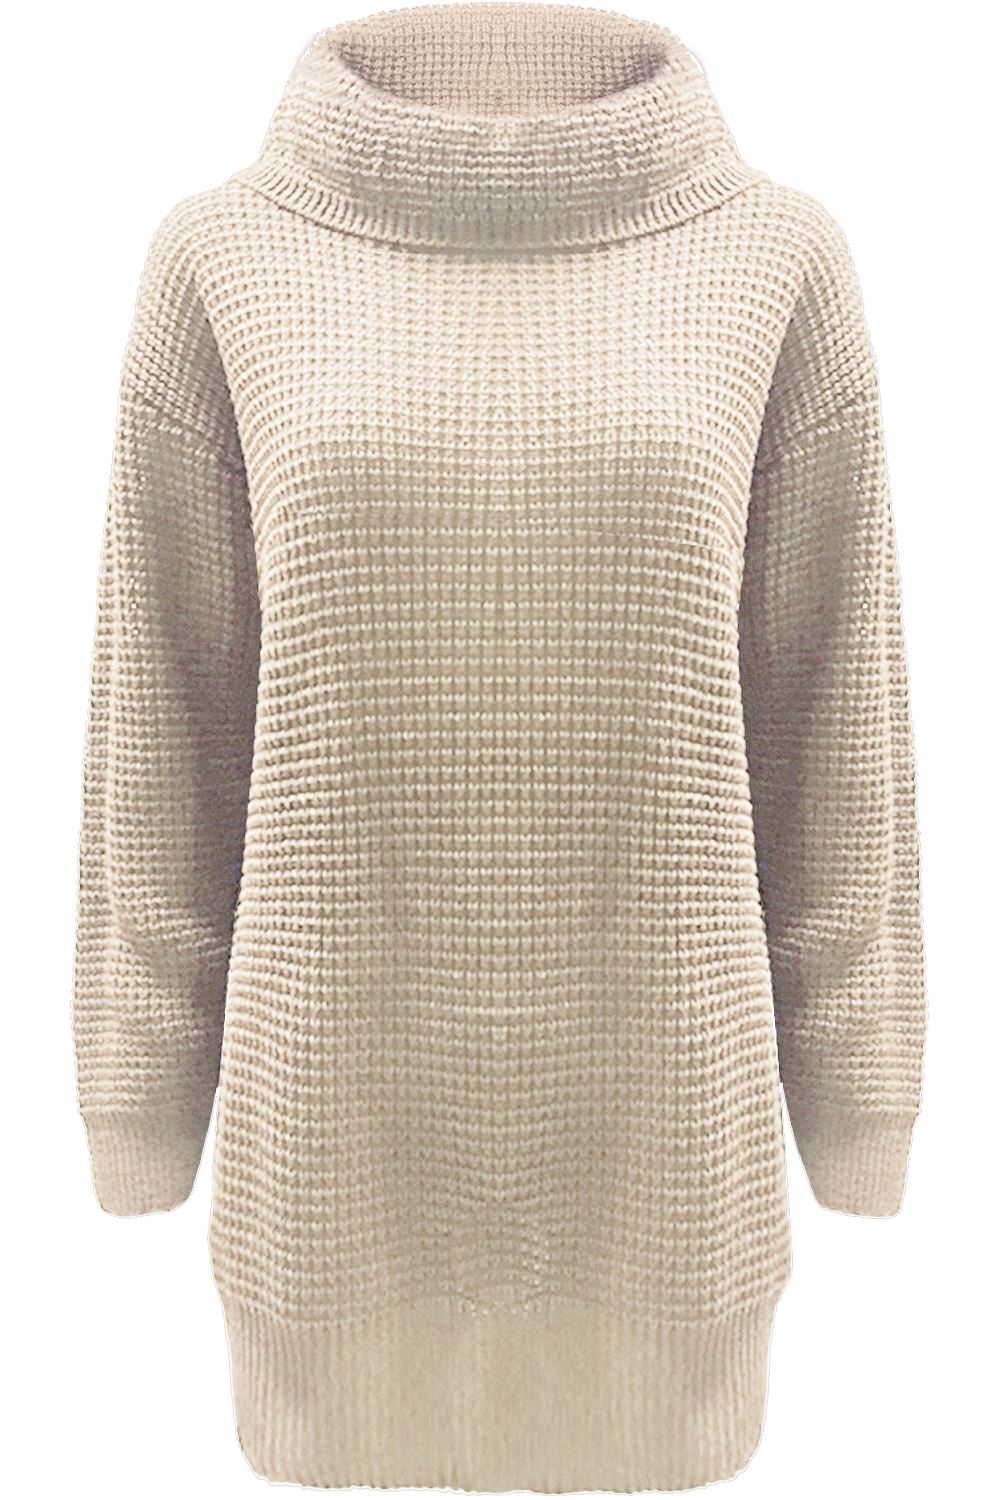 Ladies Chunky Knit Jumper - Gray Cardigan Sweater